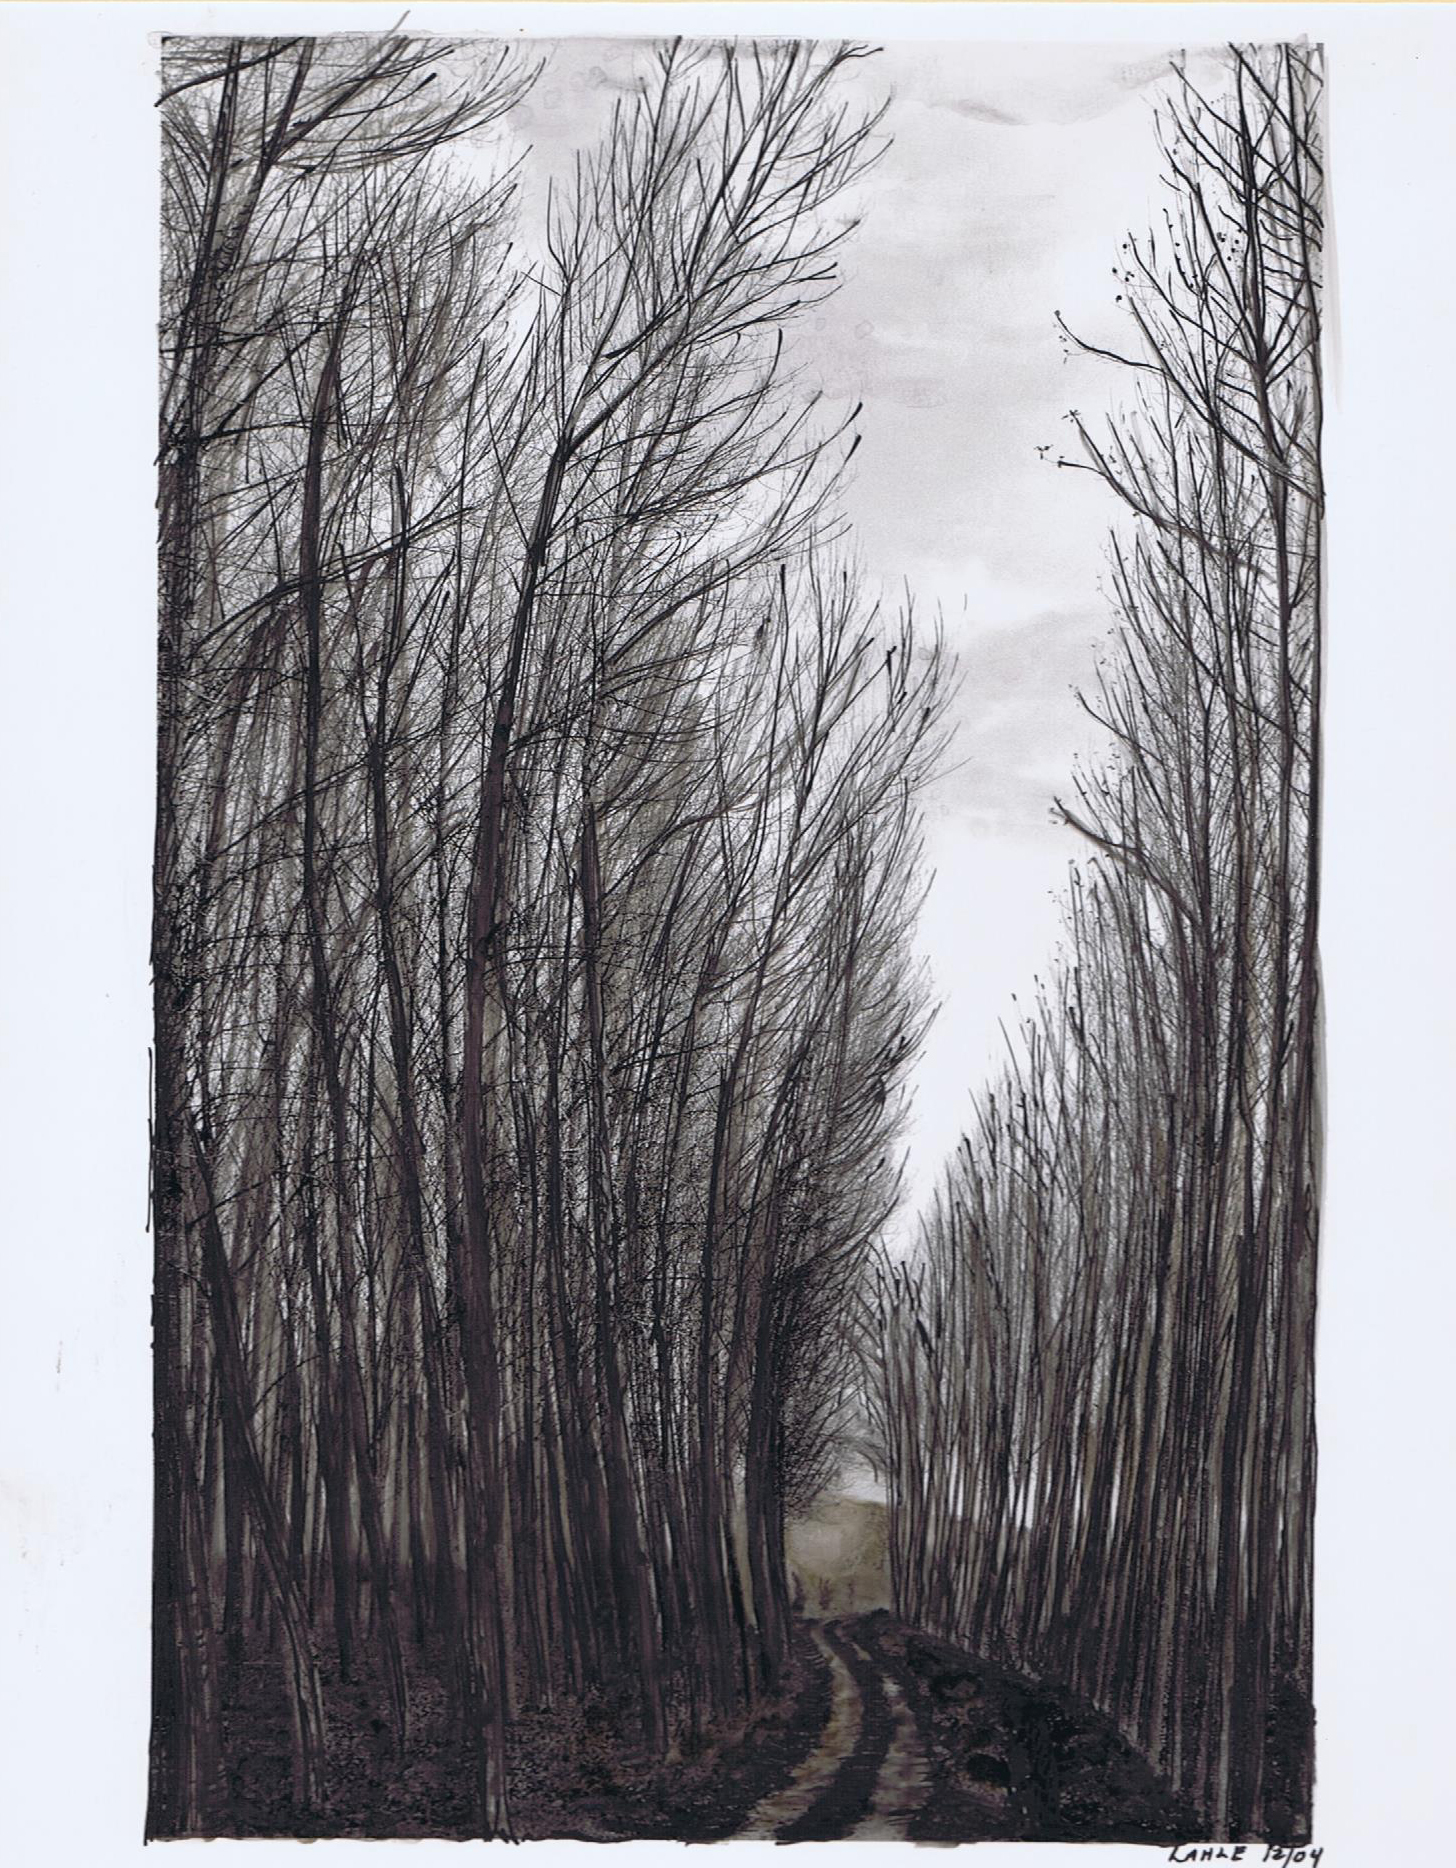 Birch Trees, Marker and Sepia India Ink. By Lahle Wolfe